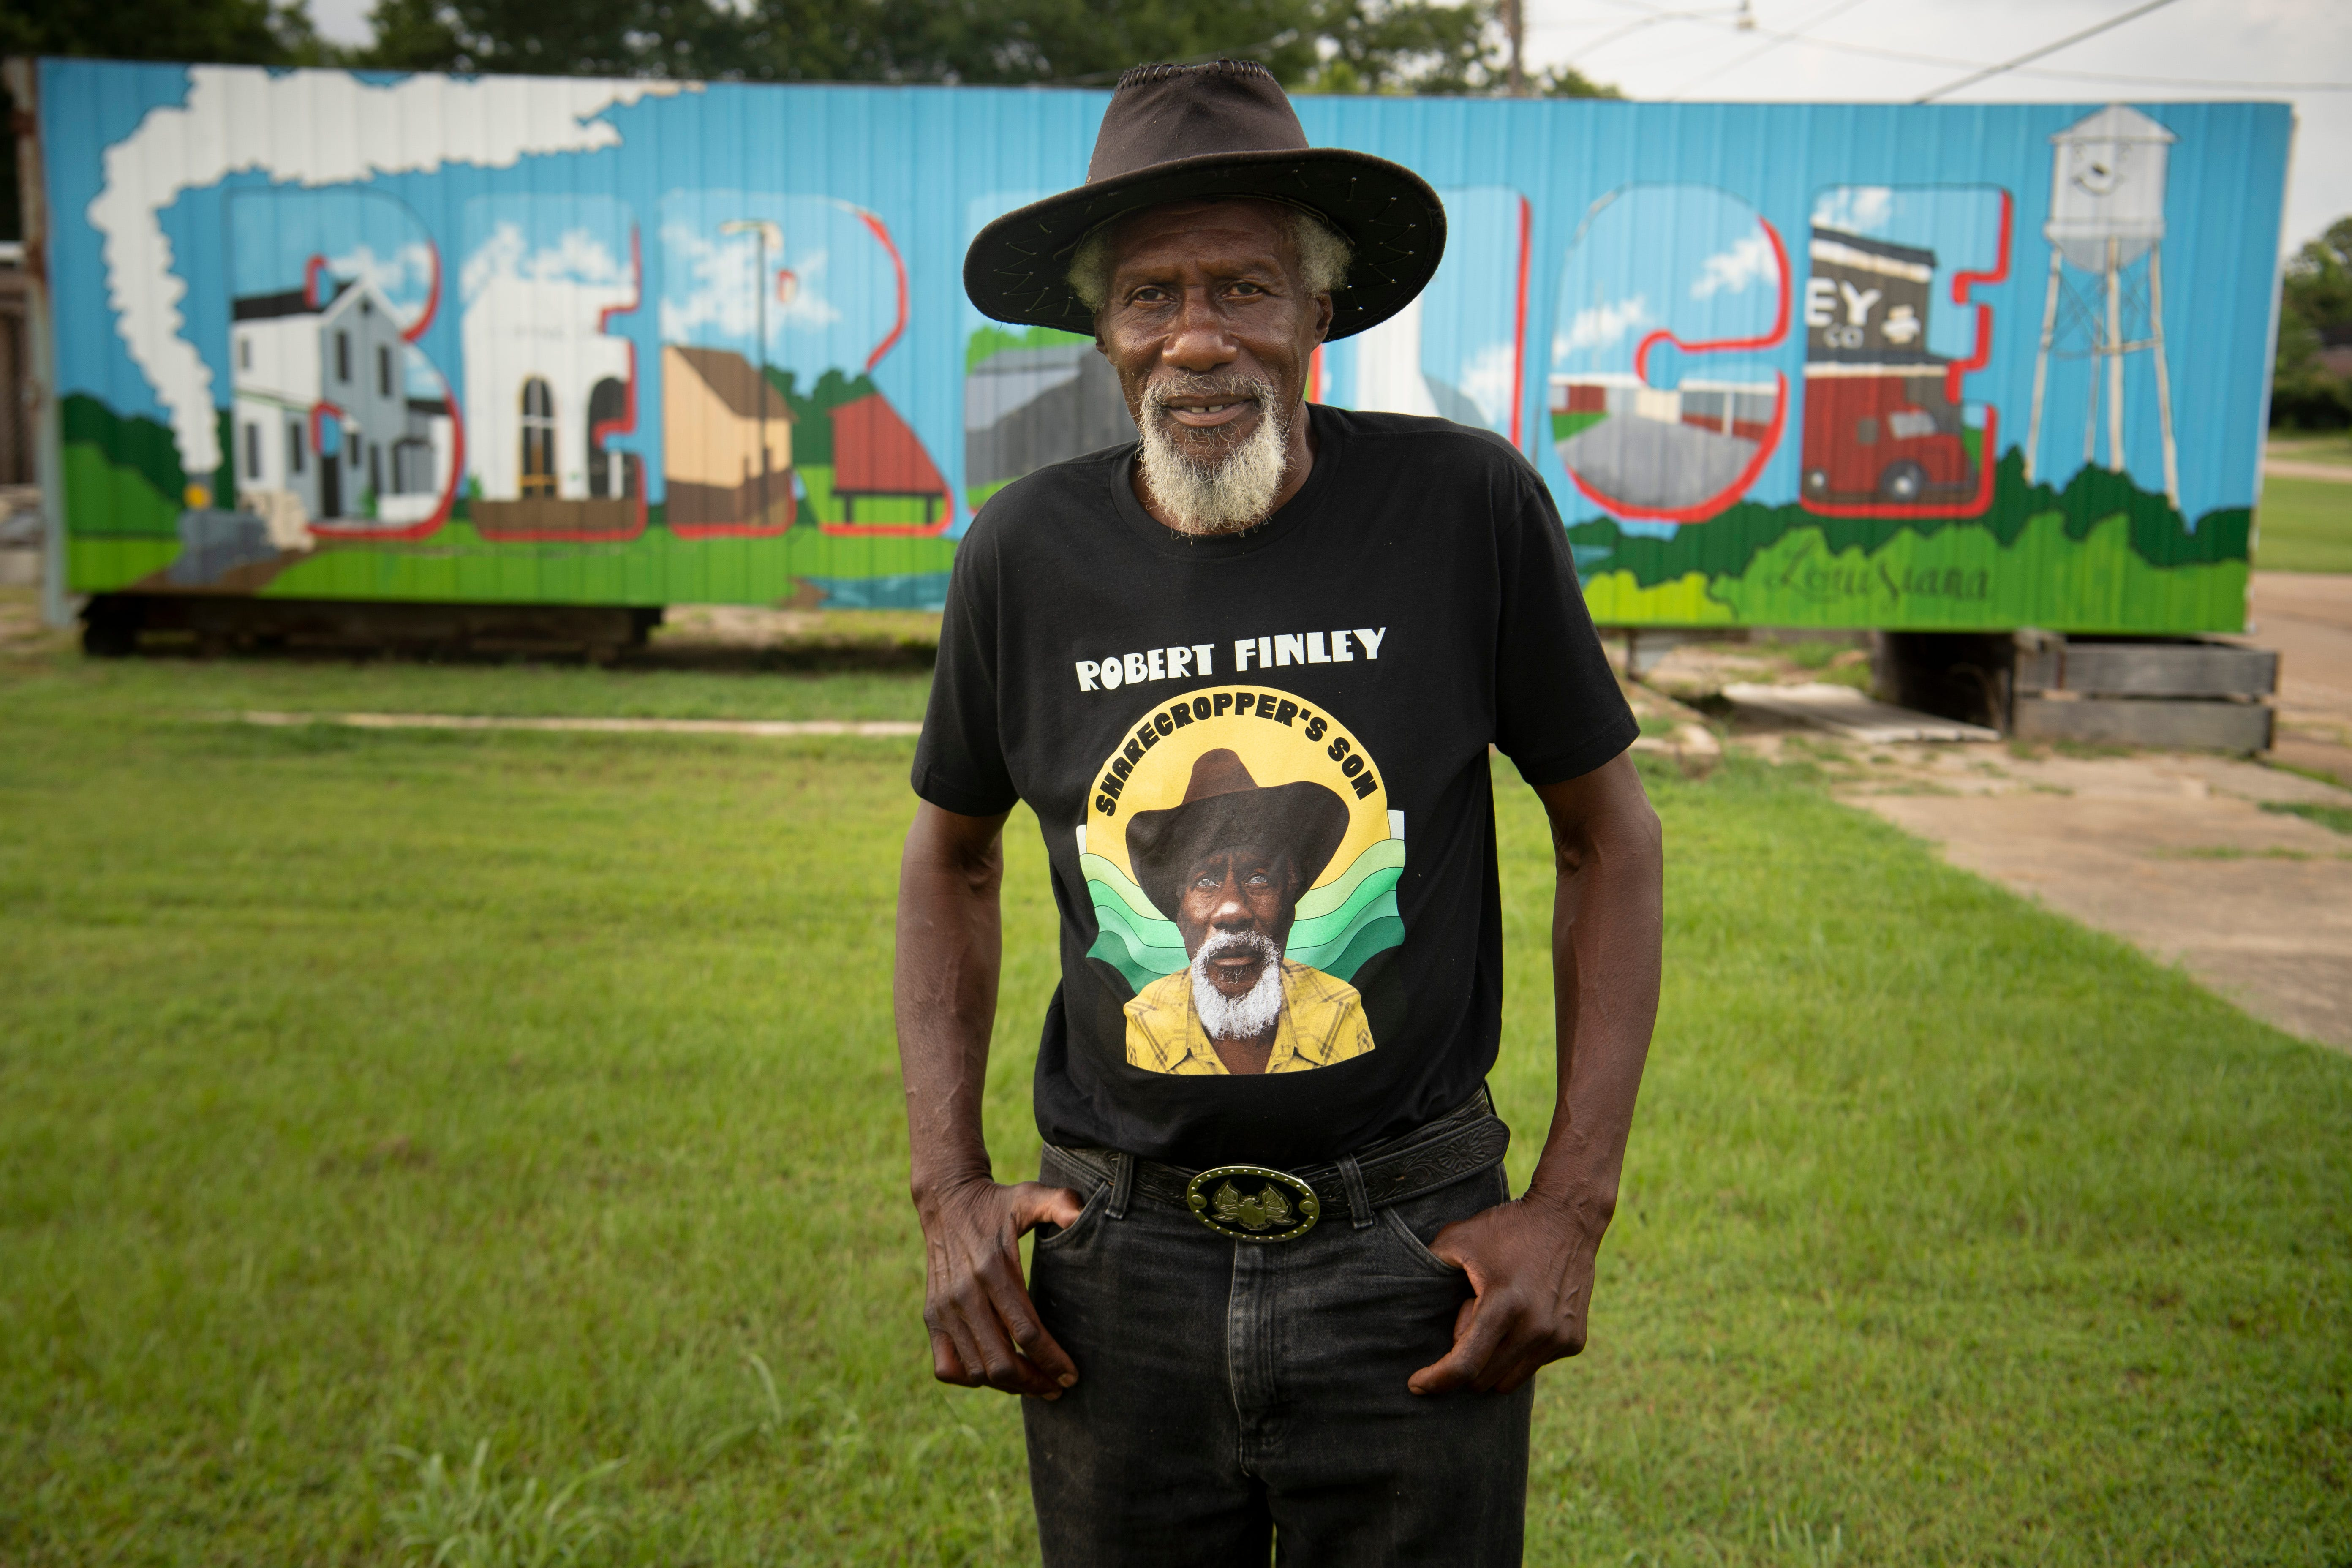 Robert Finley has lived in Bernice, Louisiana, for more than 30 years. The small town is just miles from the Arkansas border. Photographed July 16, 2021.